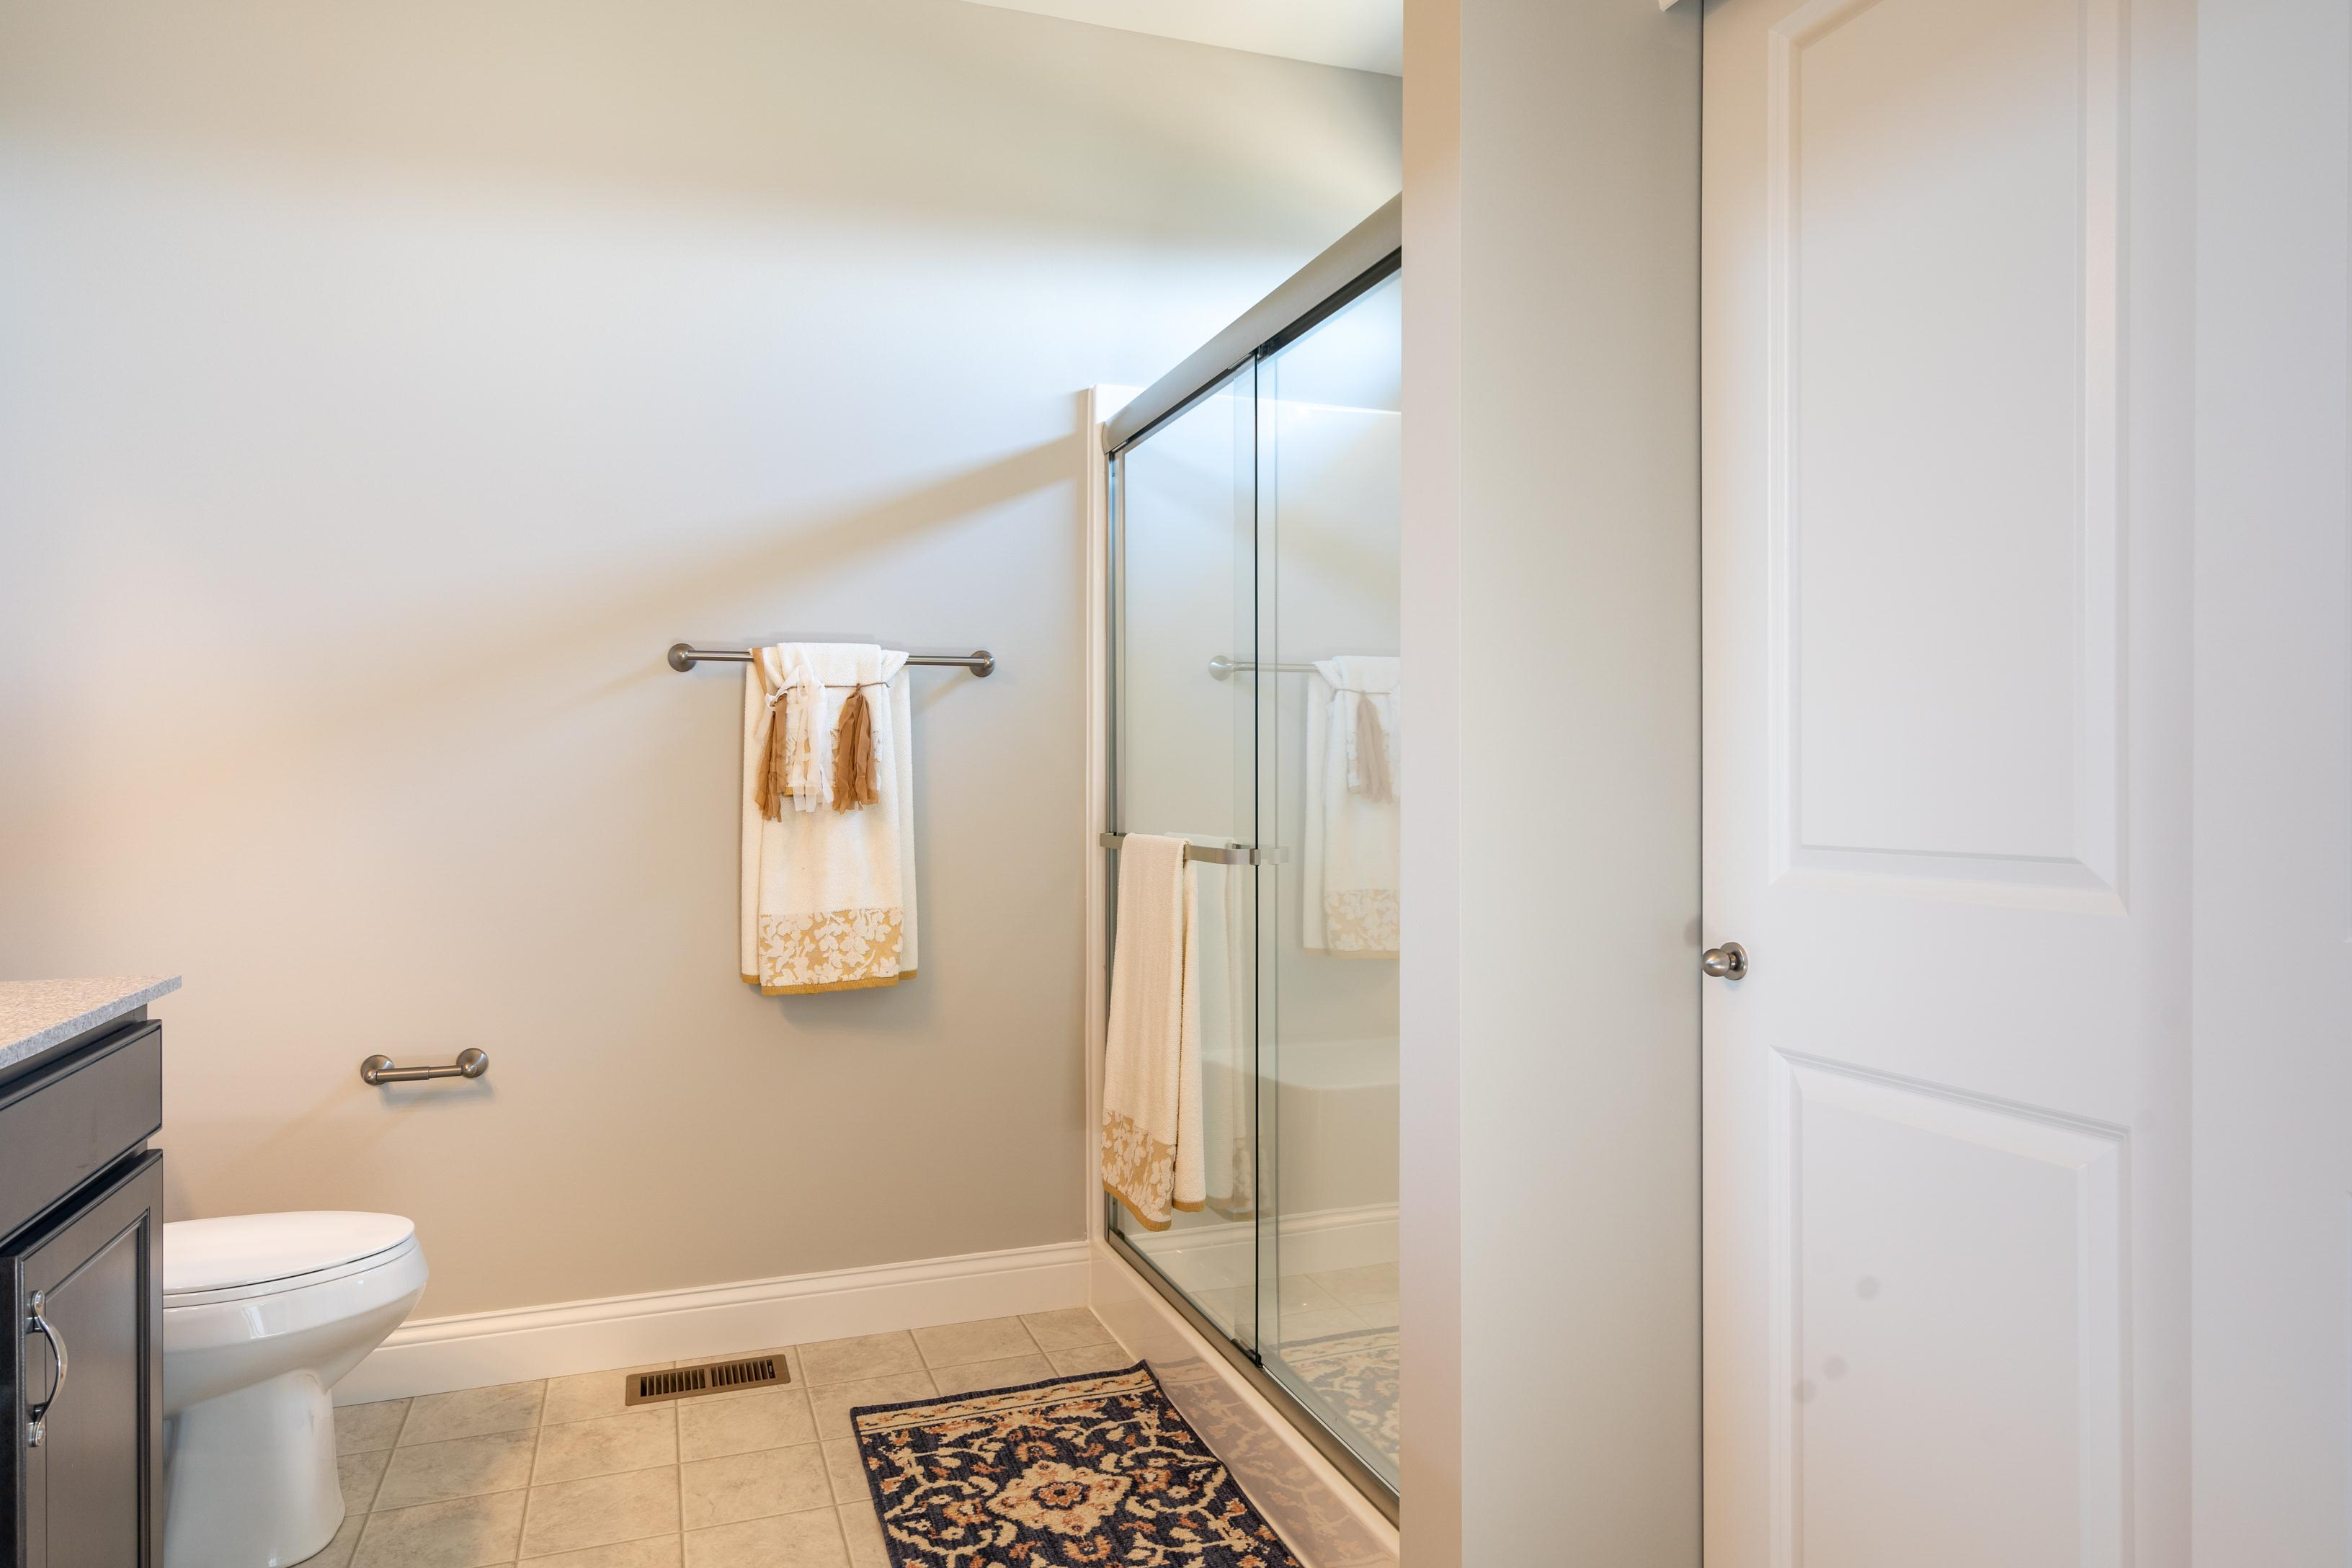 Bathroom featured in The Willow - 4 Car Garage By T.R. Hughes Homes in St. Louis, MO